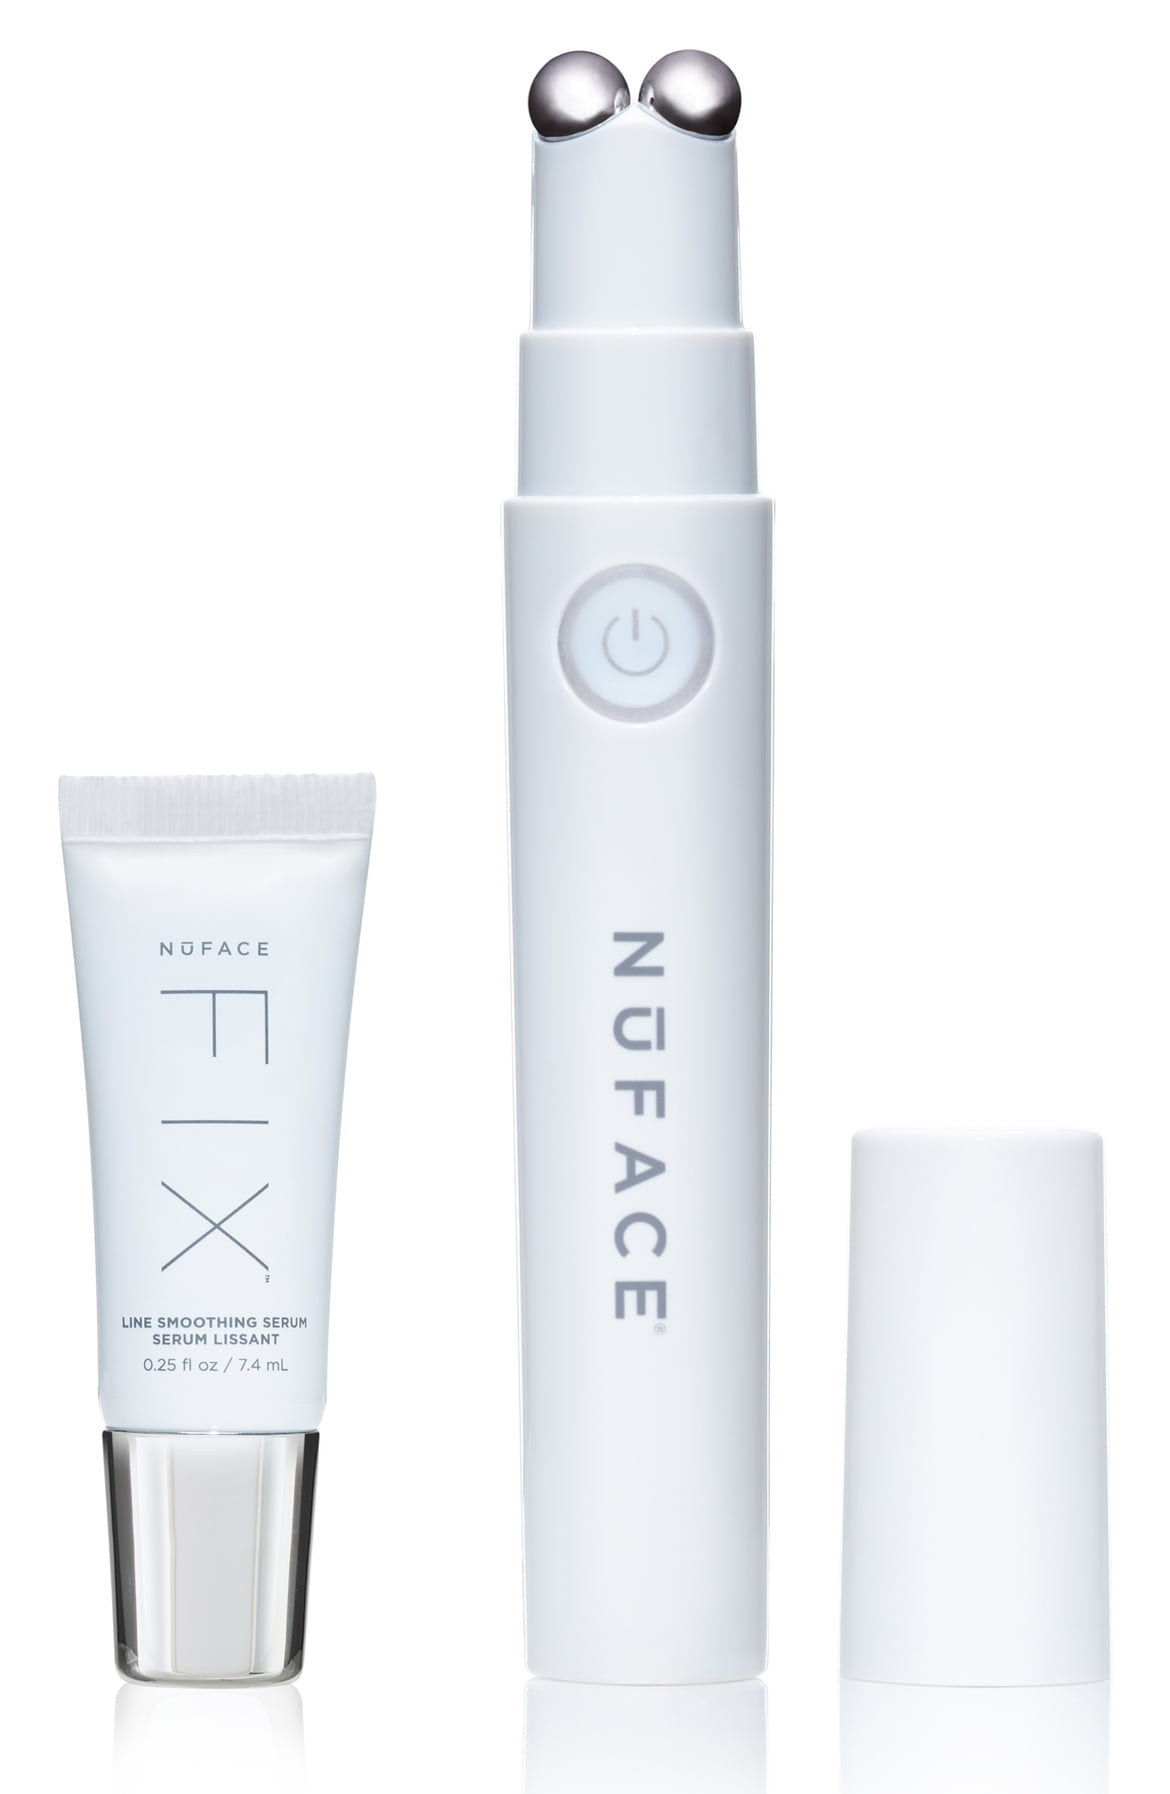 NuFACE Fix Line Smoothing Device